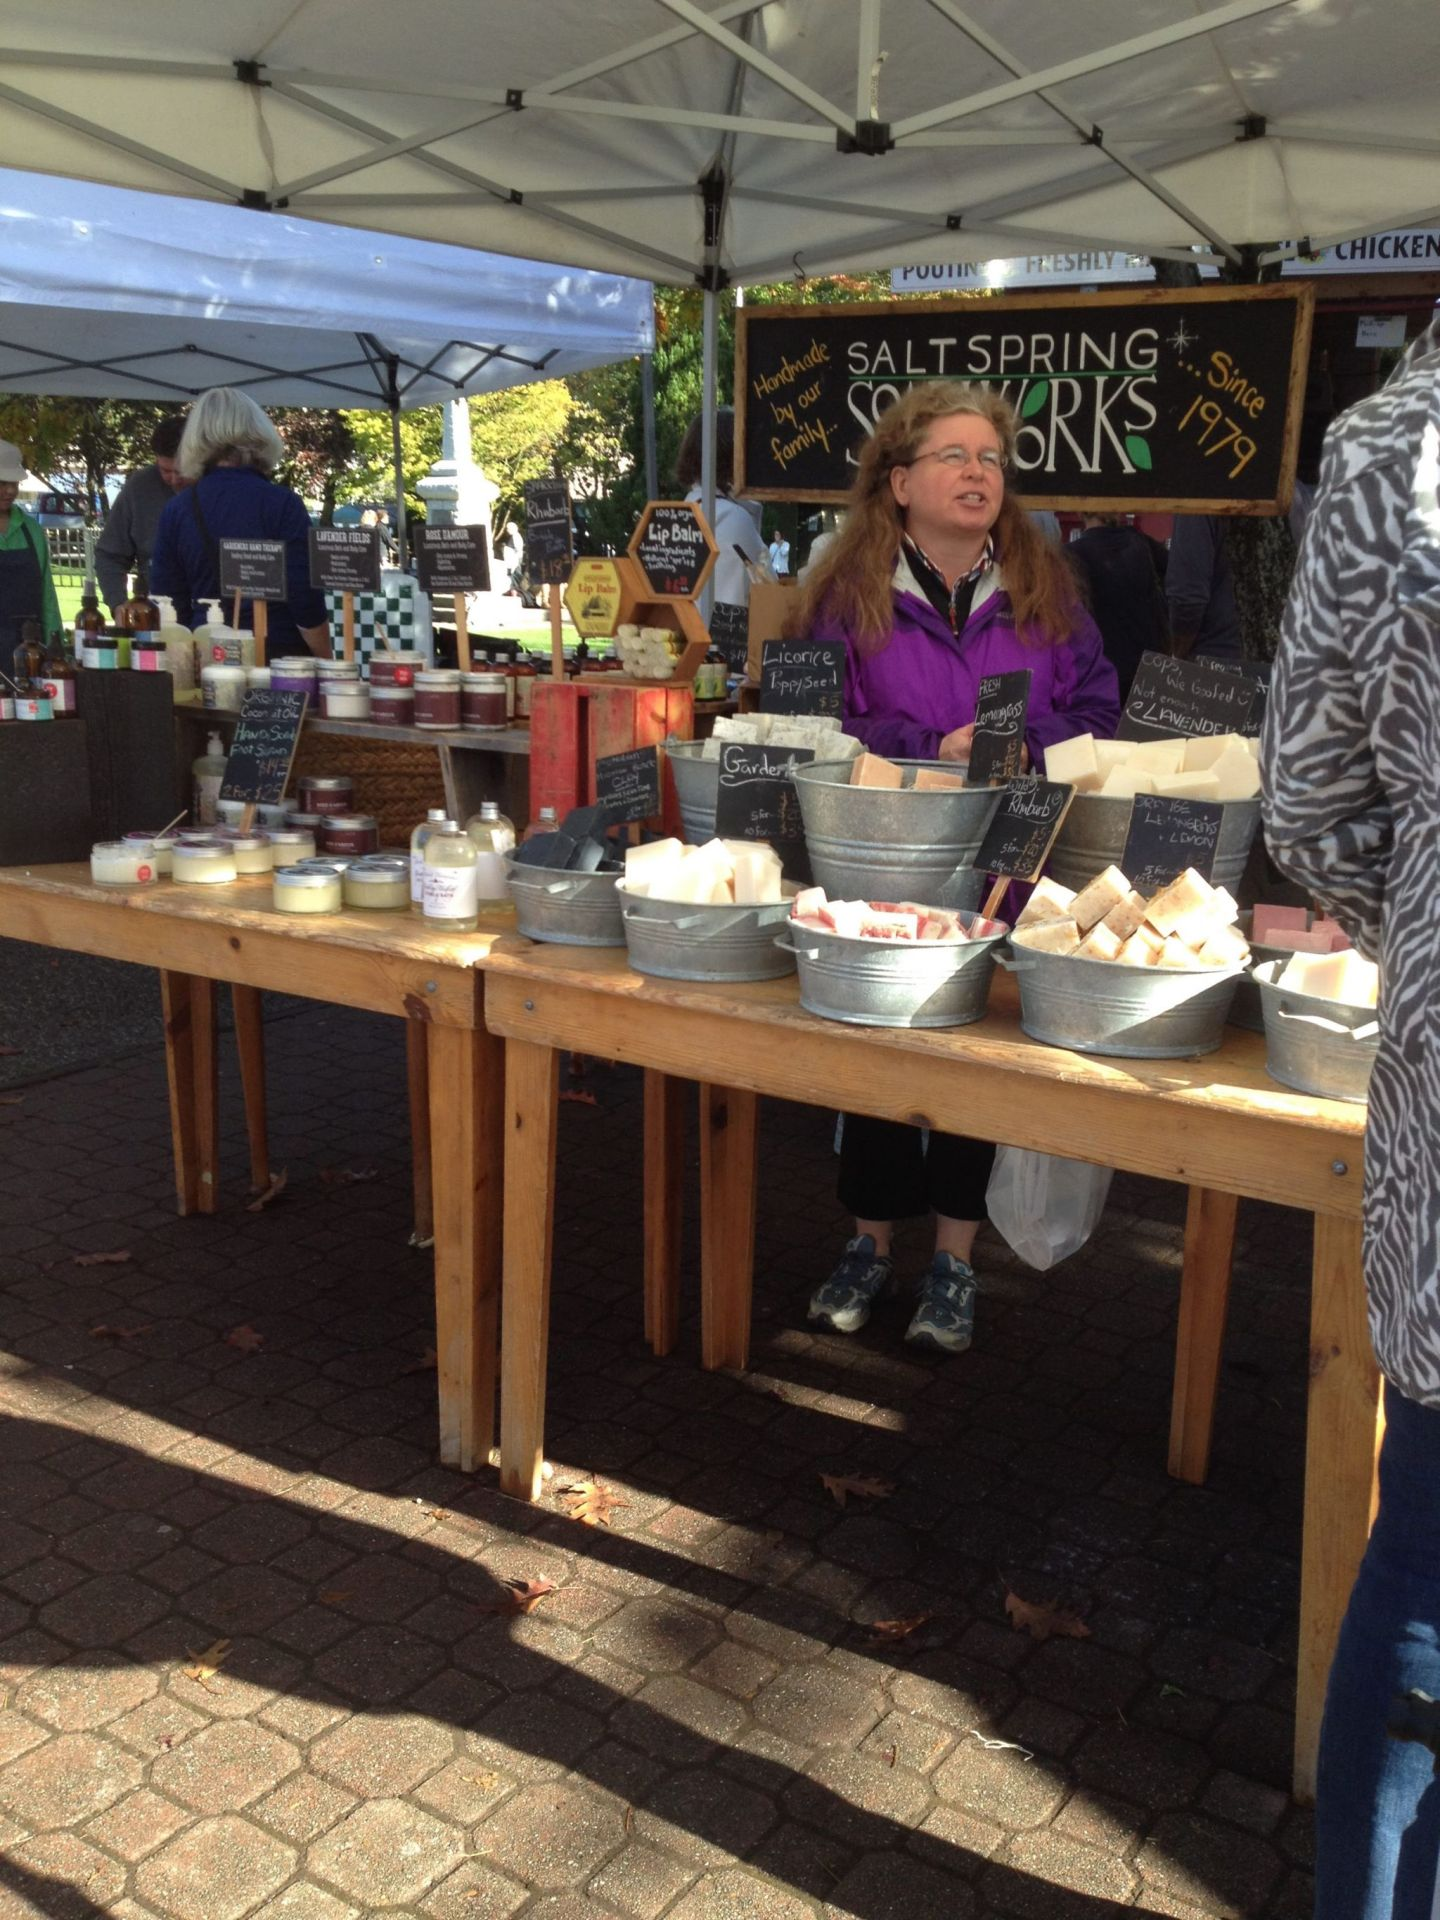 Market stalls on Salt Spring Island, British Columbia